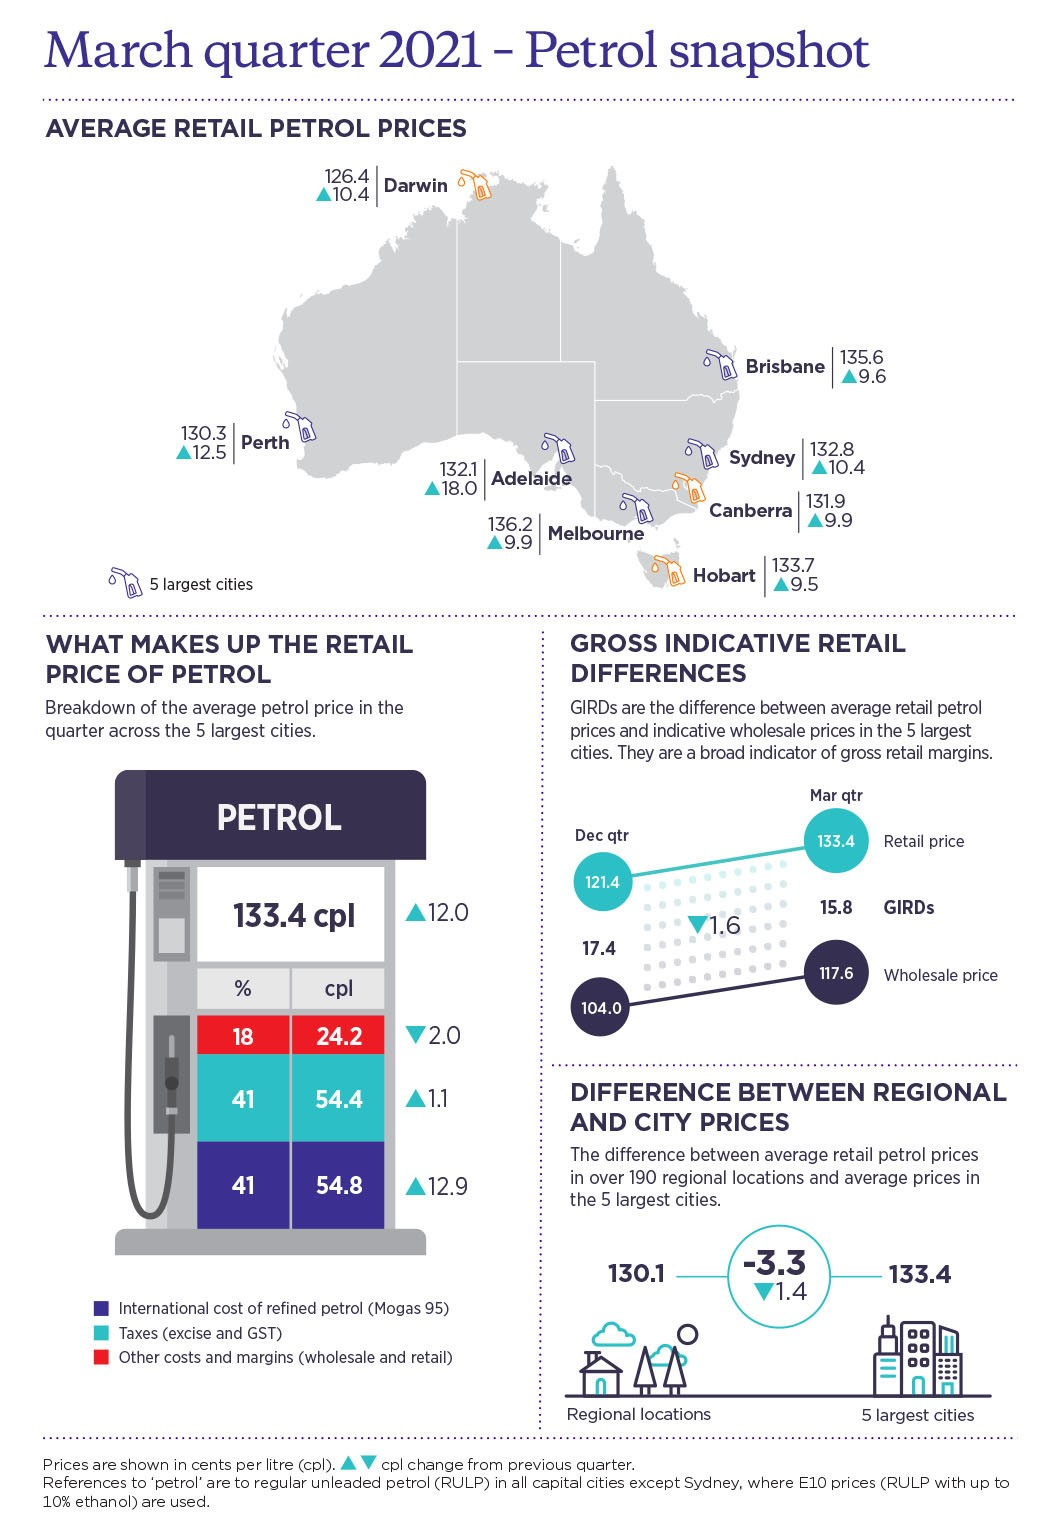 Collection of charts showing average retail petrol prices in Australian capital cities, a breakdown of the average petrol price across the 5 largest cities, gross indicative retail differences, and the difference between regional and city prices